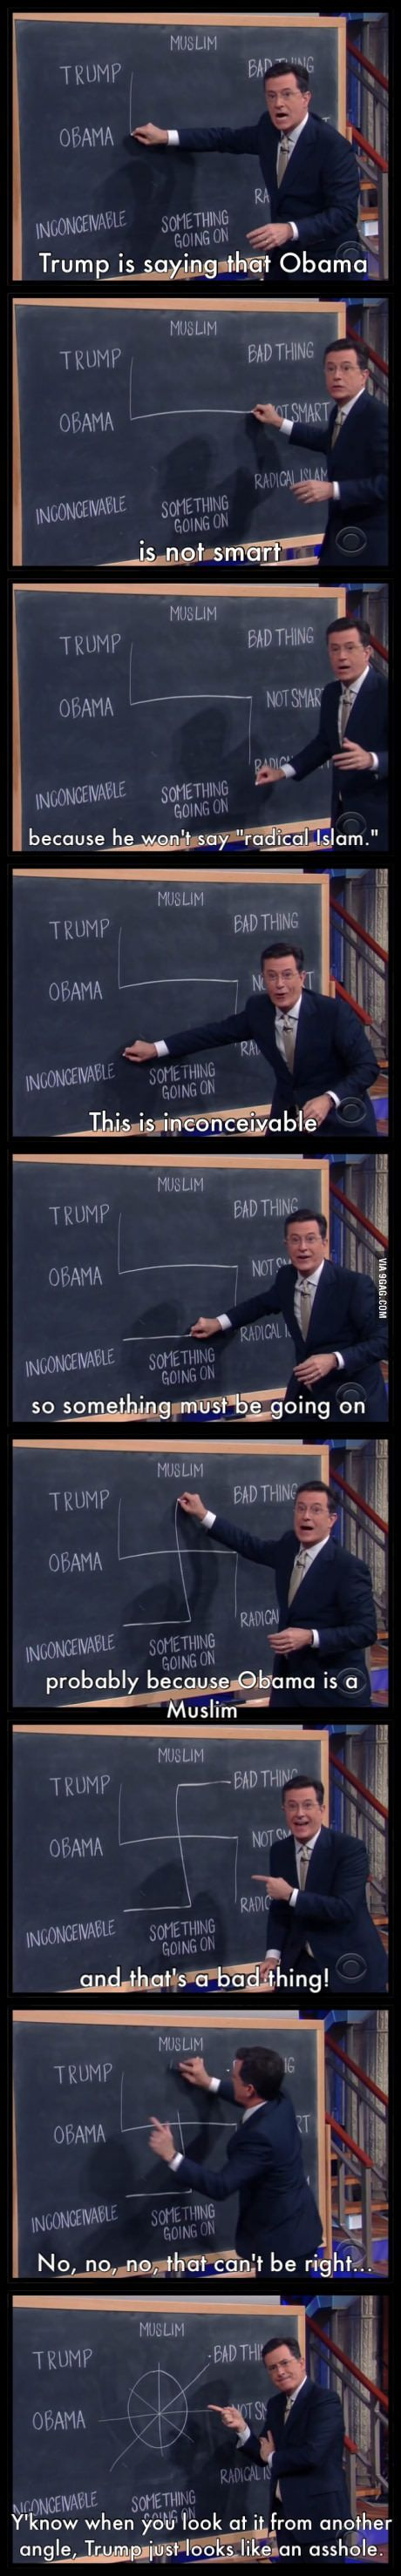 A round of applause for Stephen Colbert!